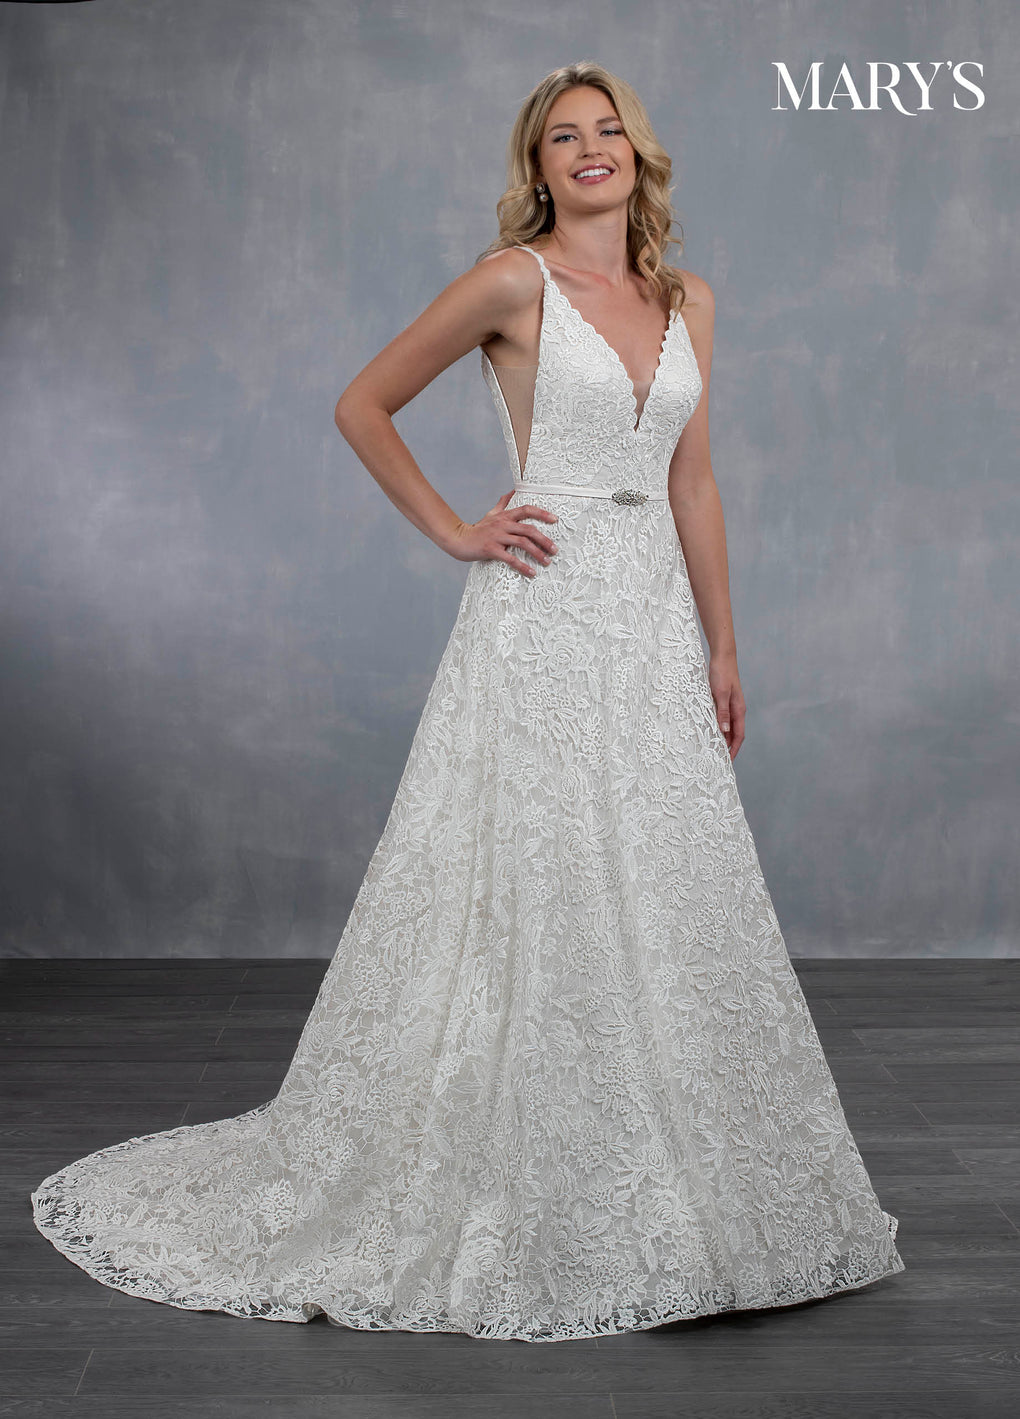 Bridal Wedding Dresses in Ivory/Sand, Ivory, or White Color